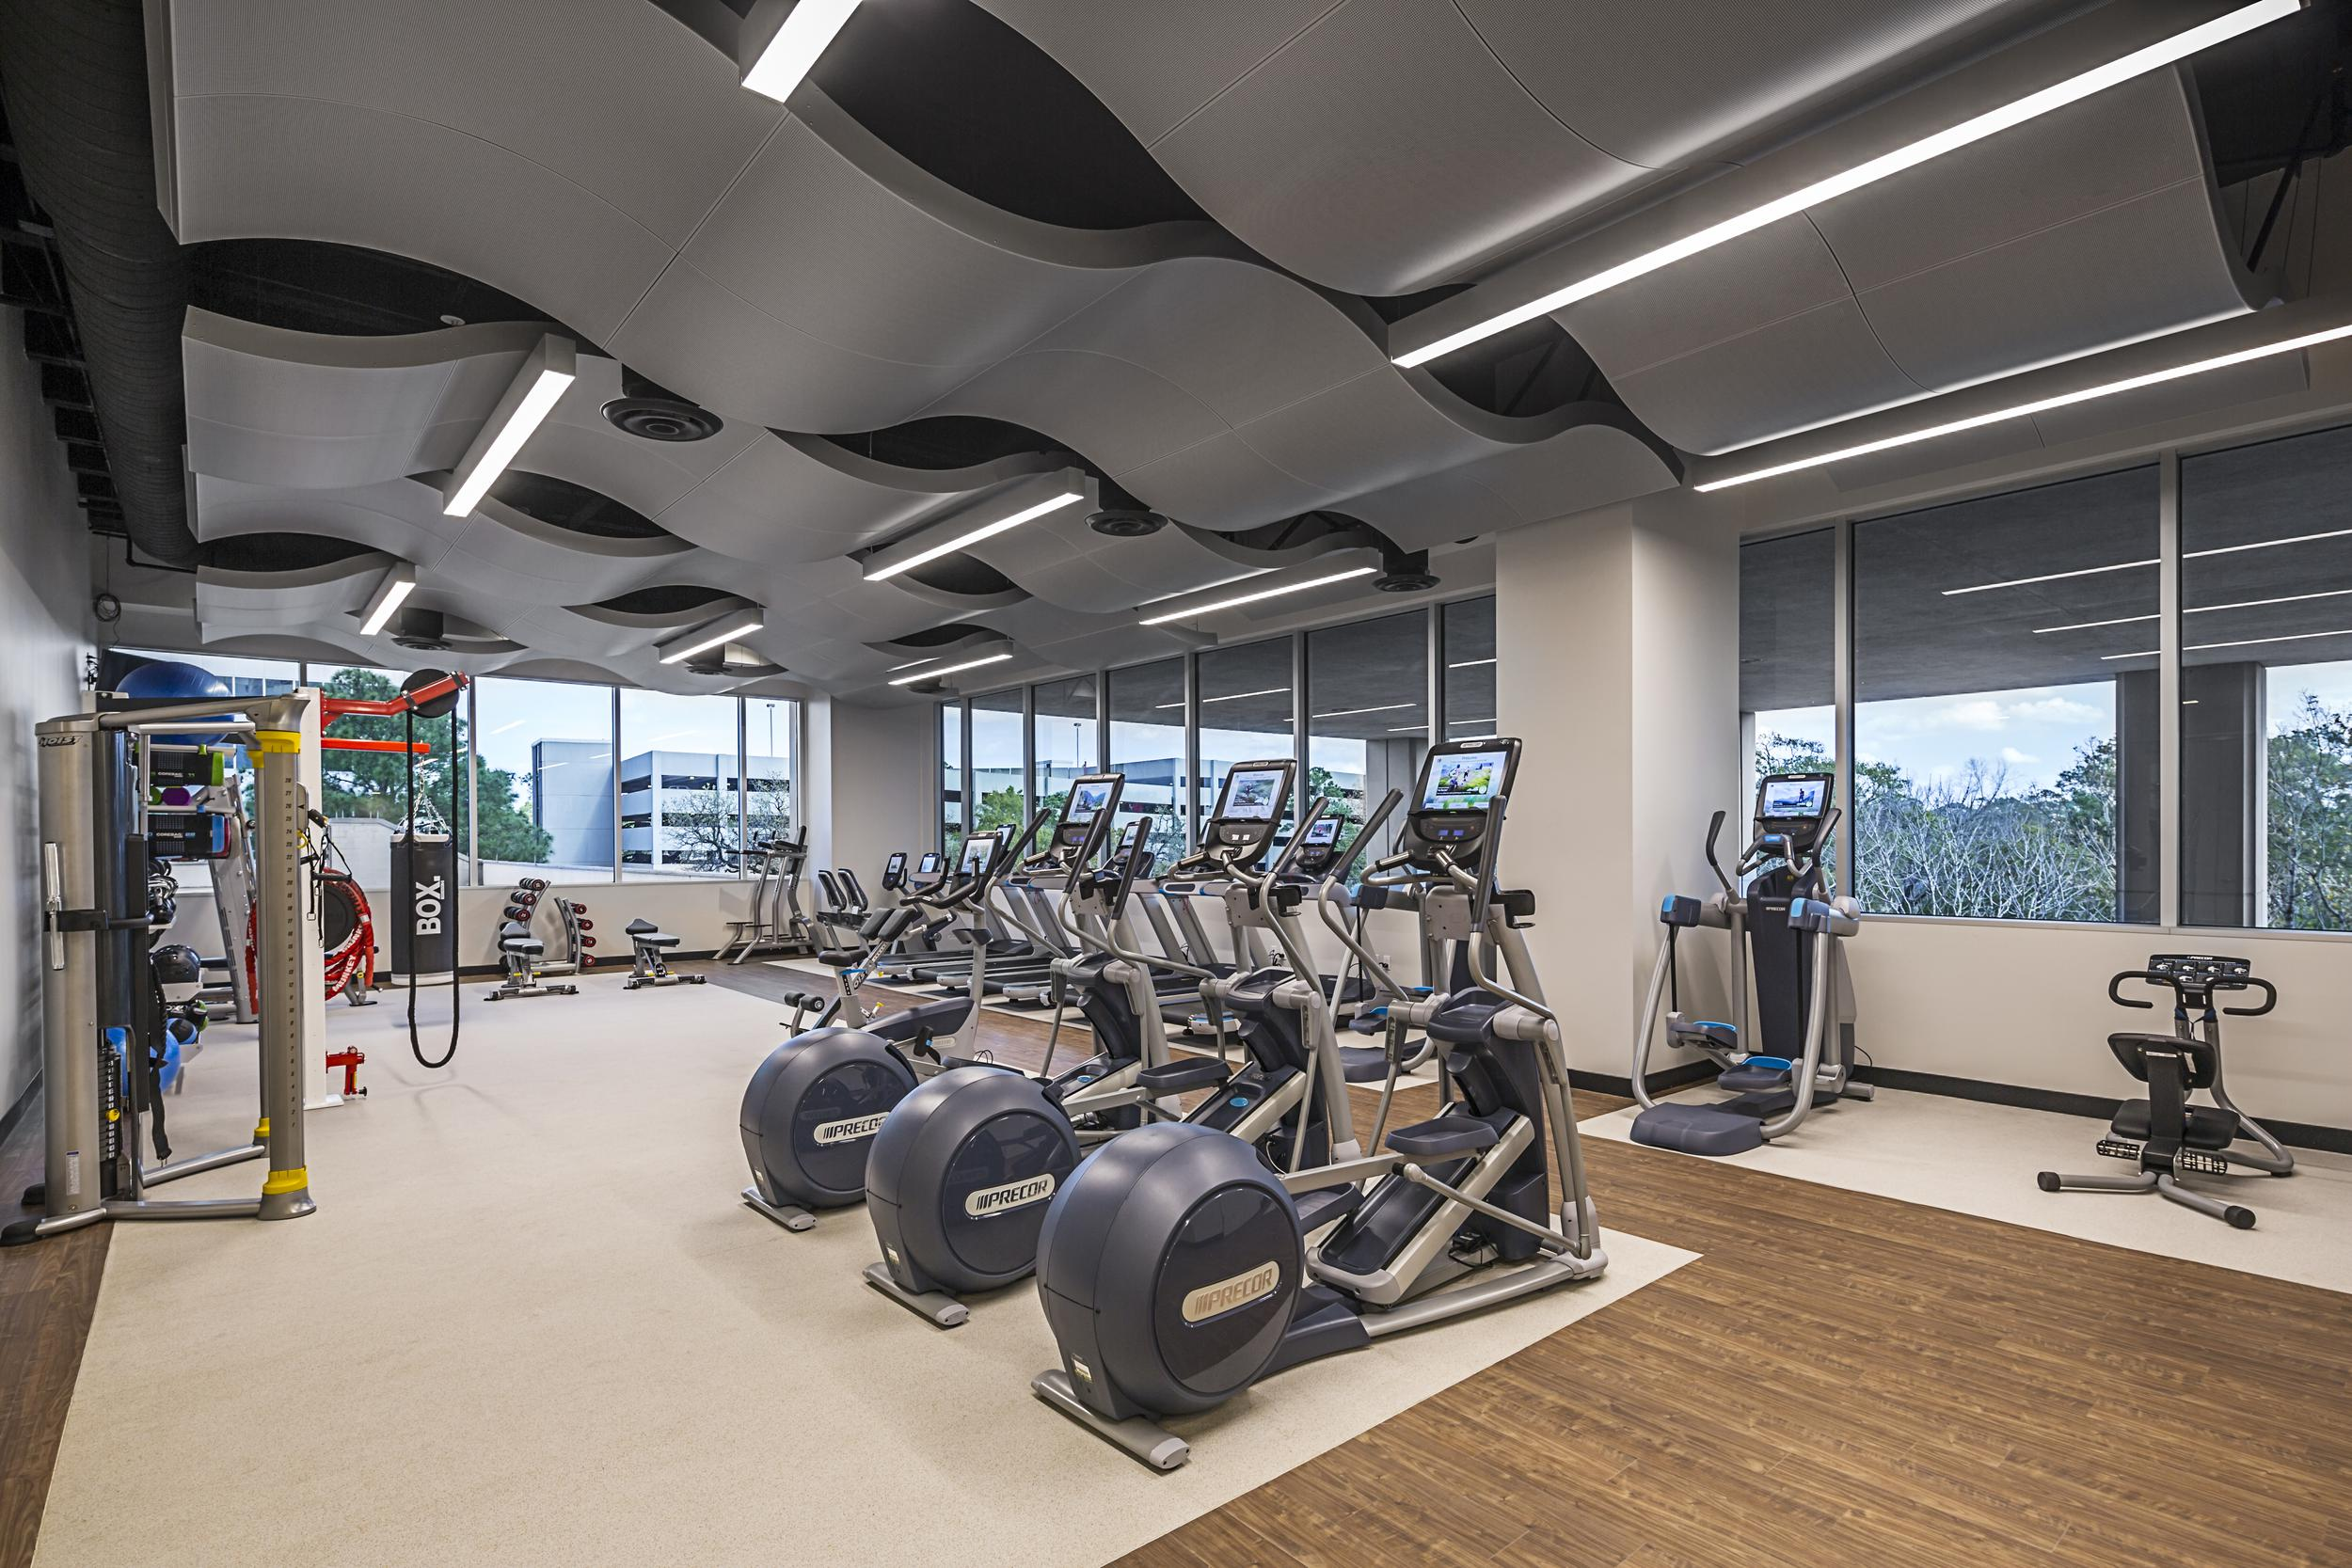 Your corporate office rental should come with high-end amenities, like a state-of-the-art fitness center.